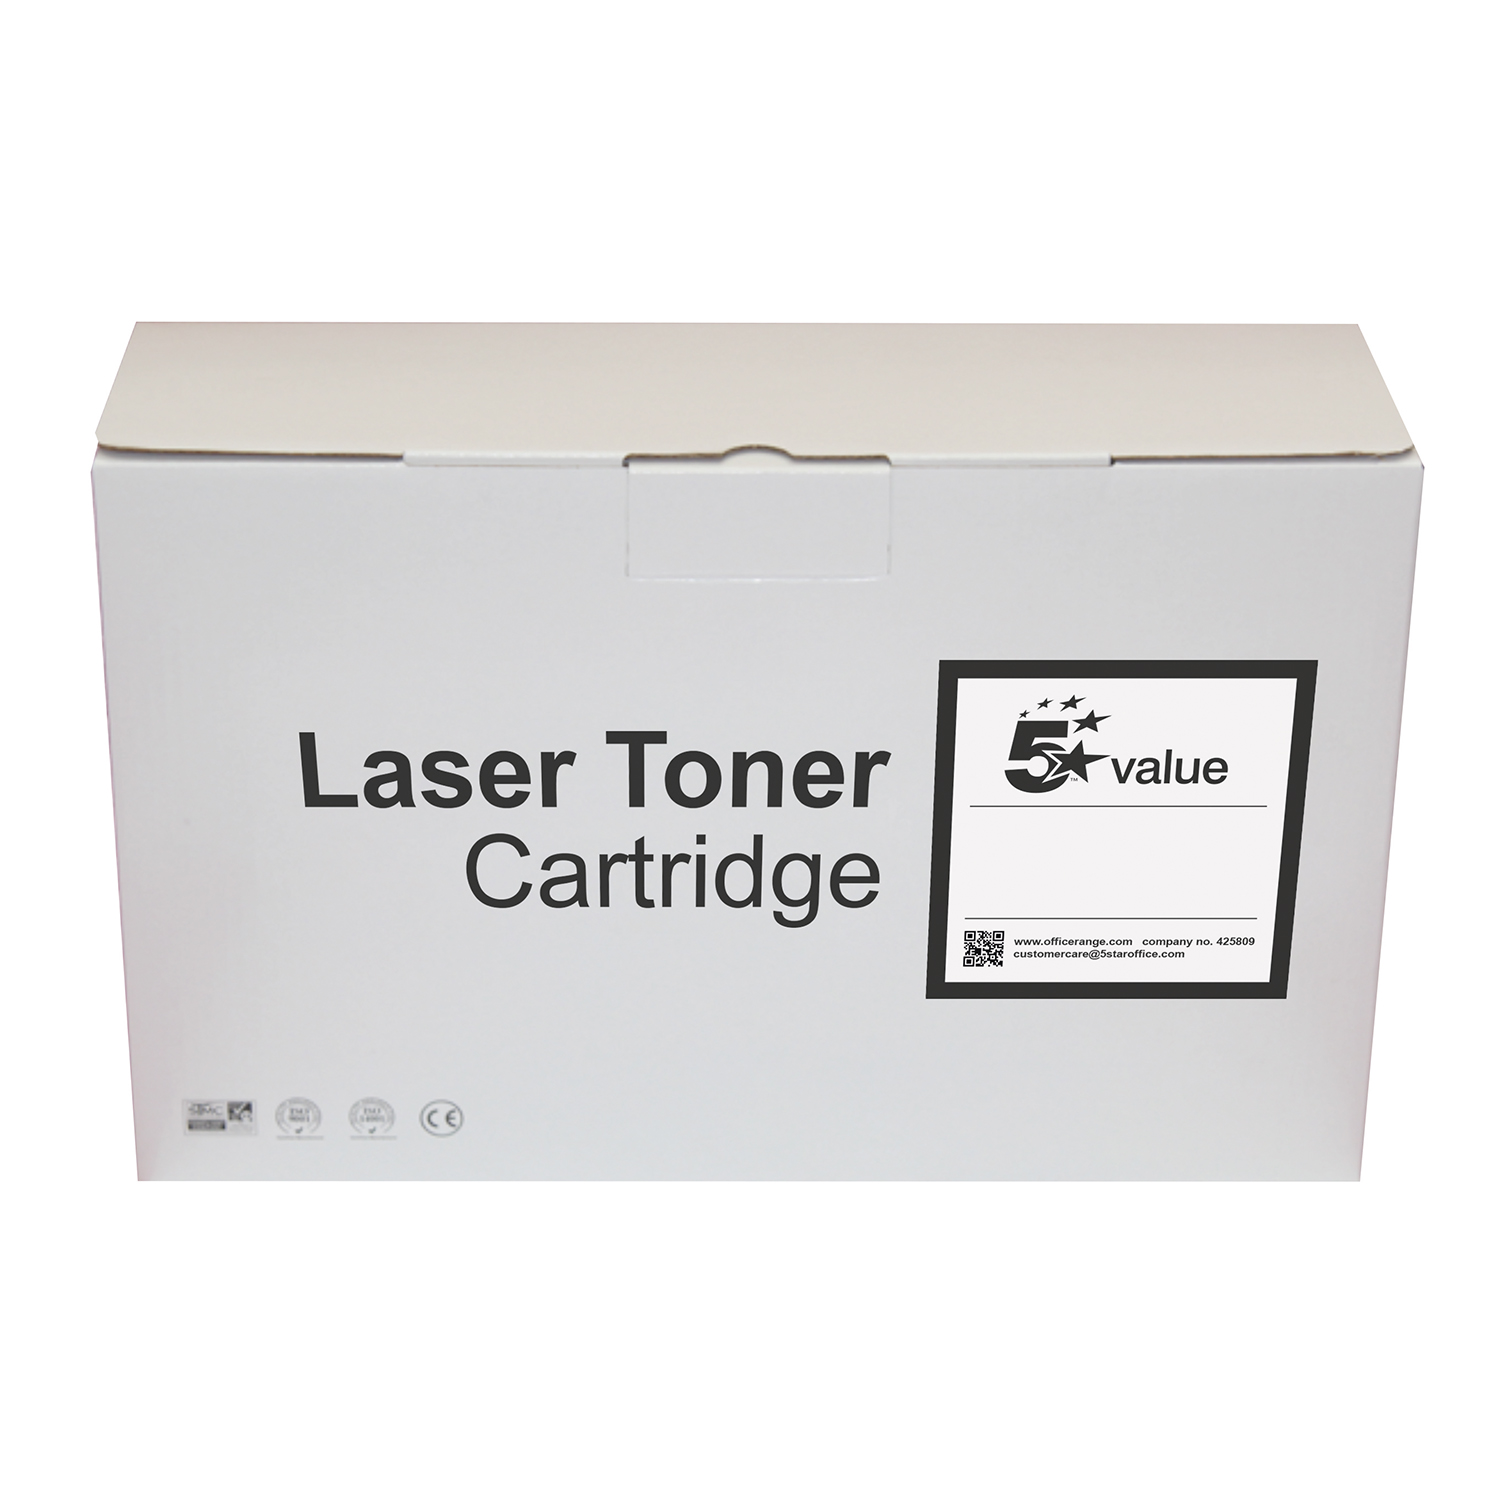 5 Star Value Remanufactured Laser Toner Cartridge 12500pp Black HP No. 55X CE255X Alternative